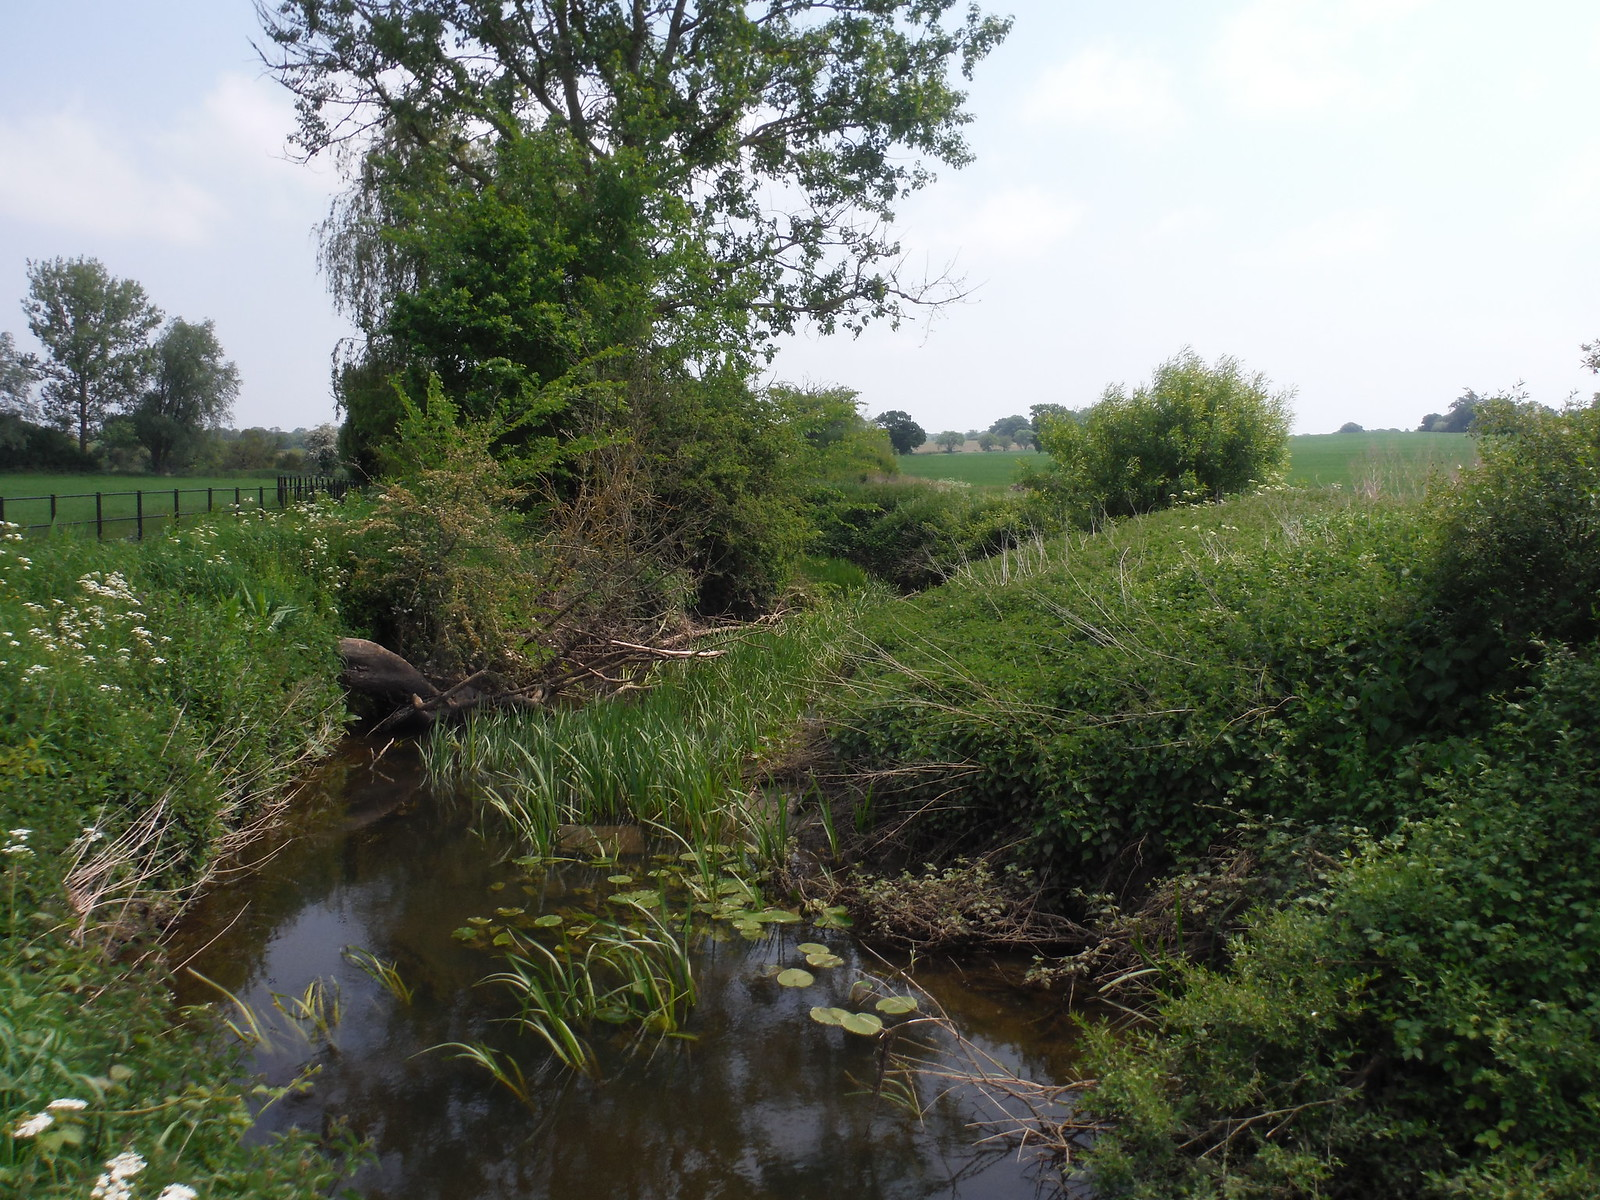 The Wid River SWC Walk 158 - Ingatestone to Battlesbridge or Wickford